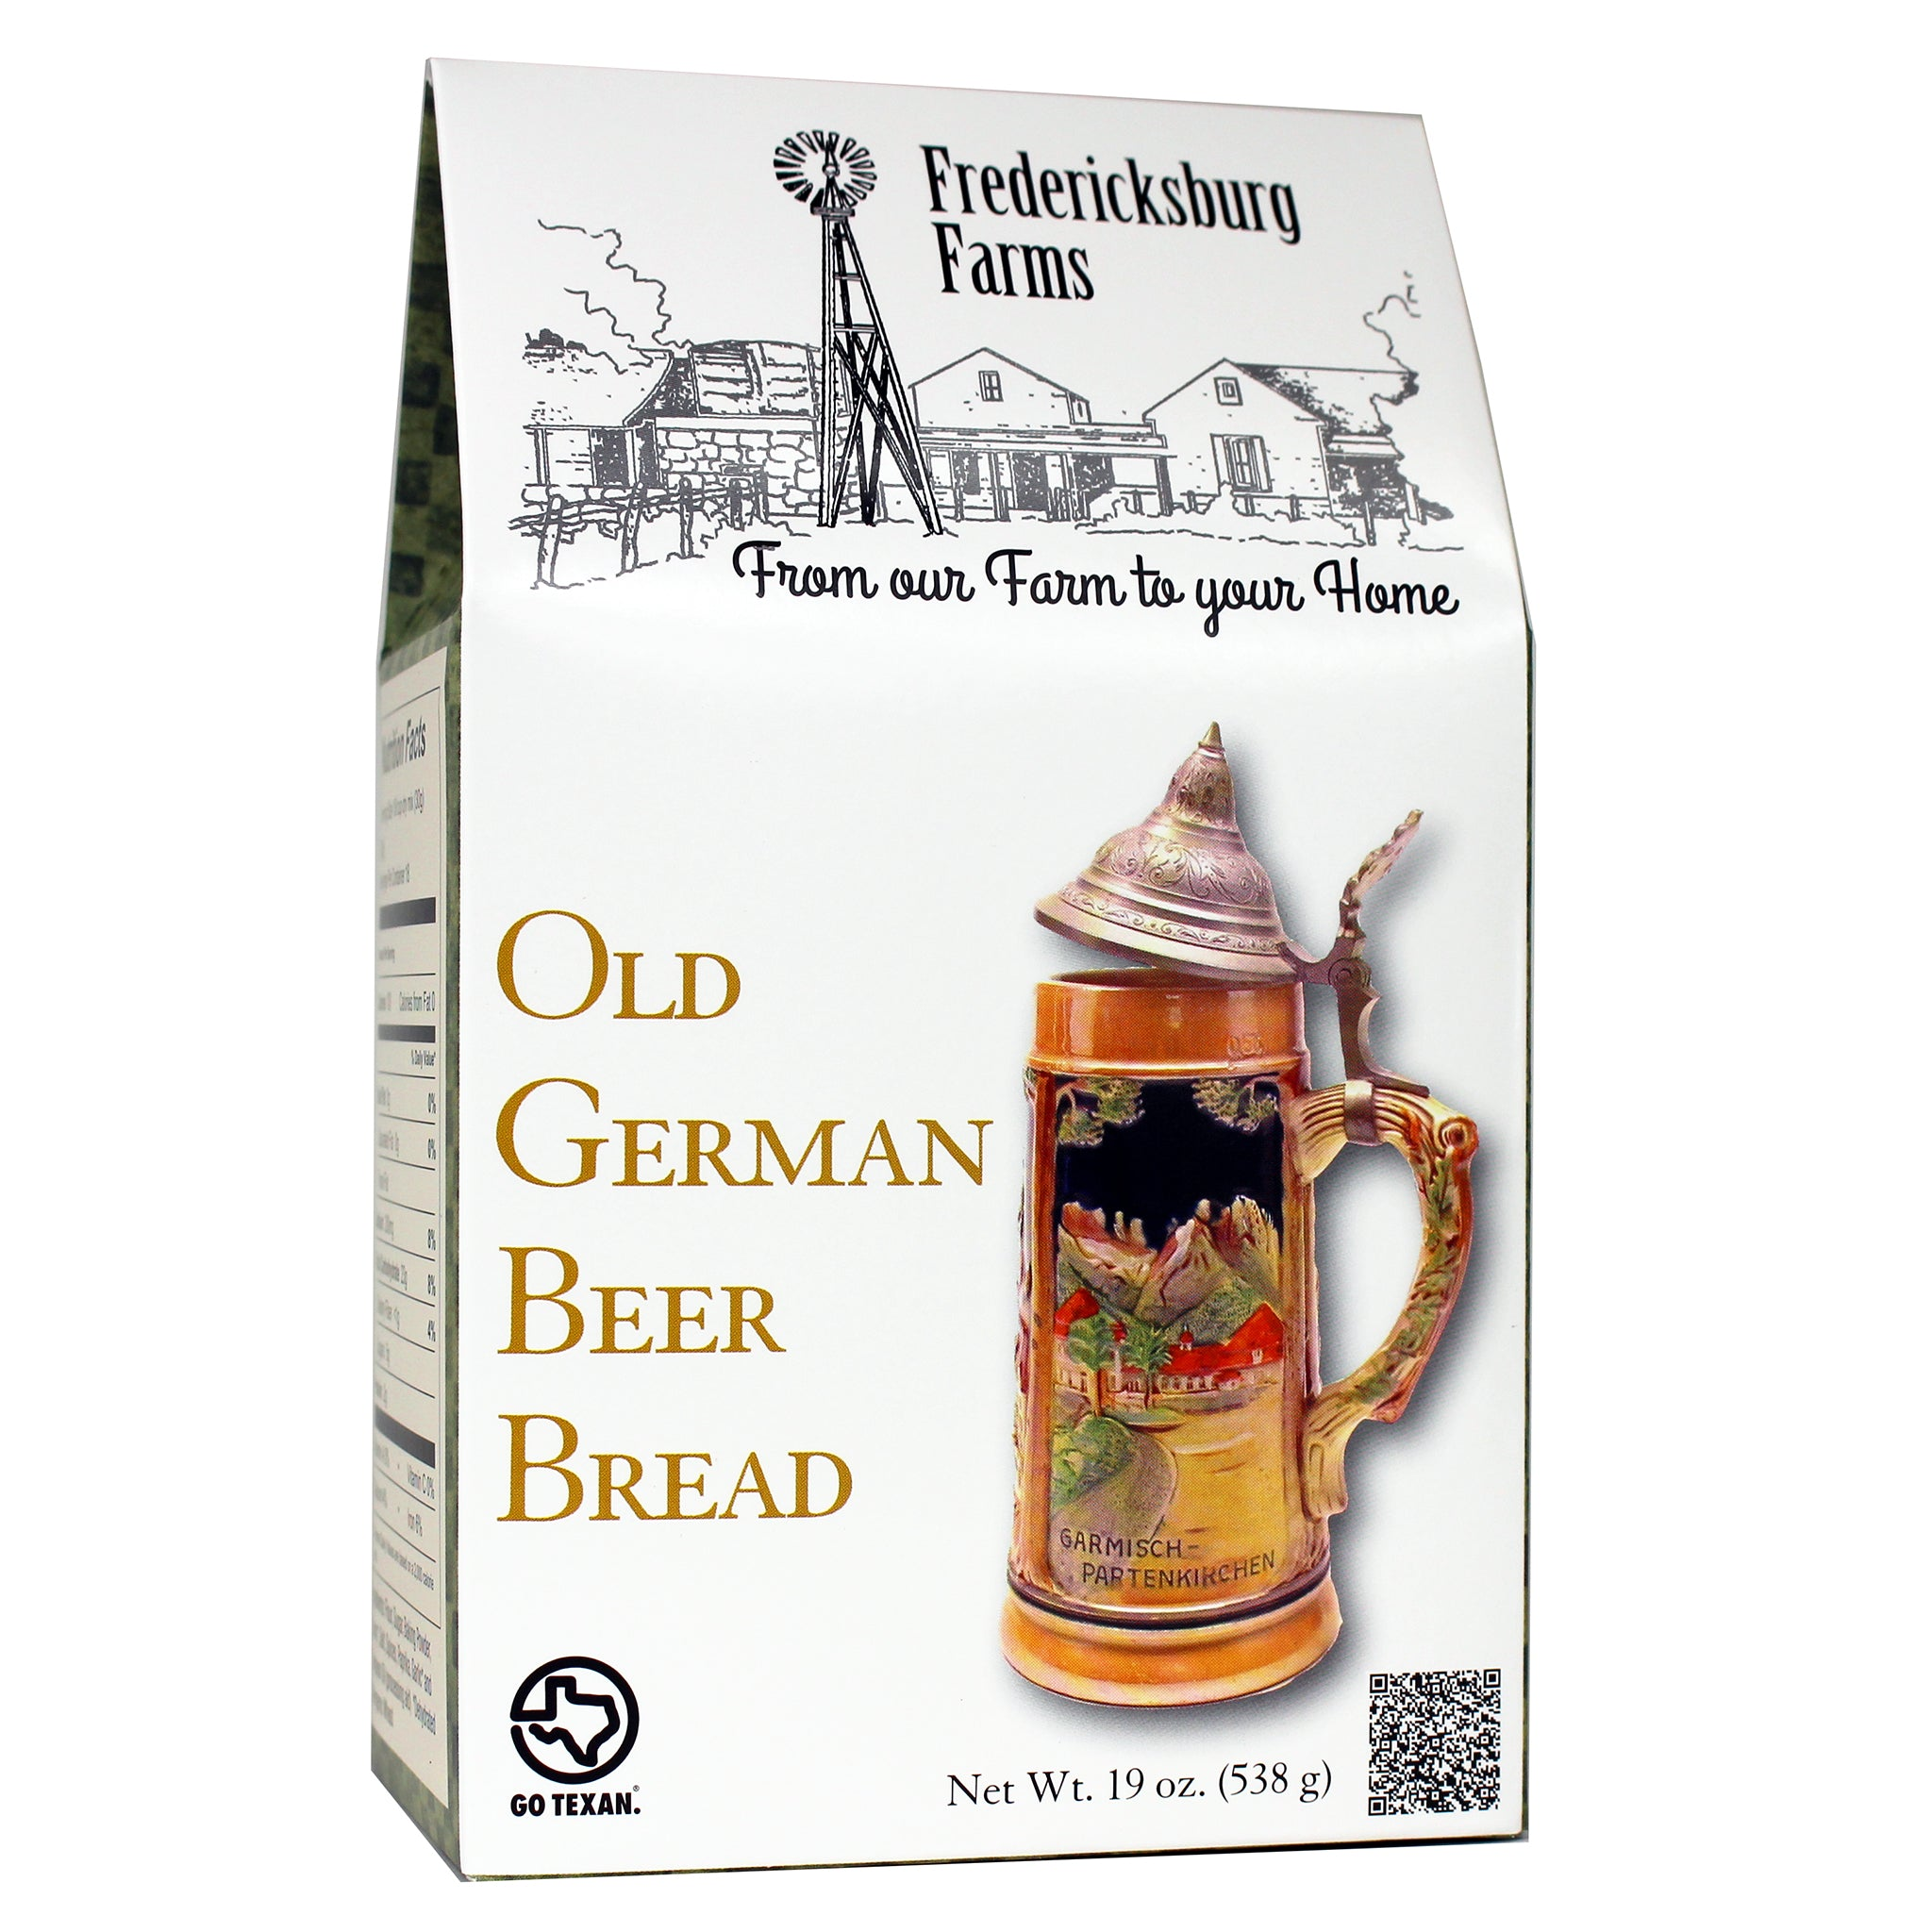 Old German Beer Bread